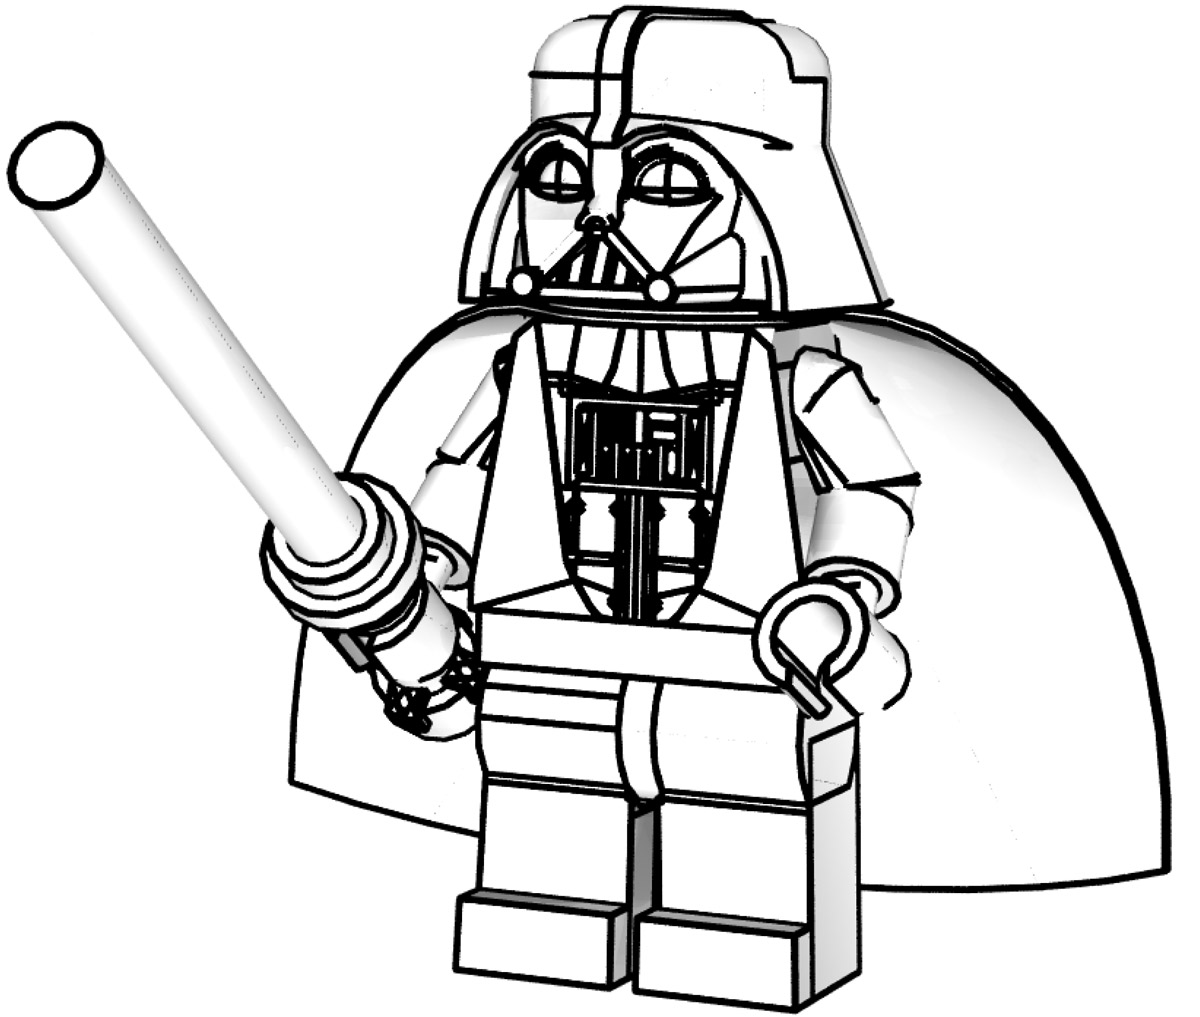 Stormtrooper coloring pages clipart best for Stormtrooper coloring pages printable